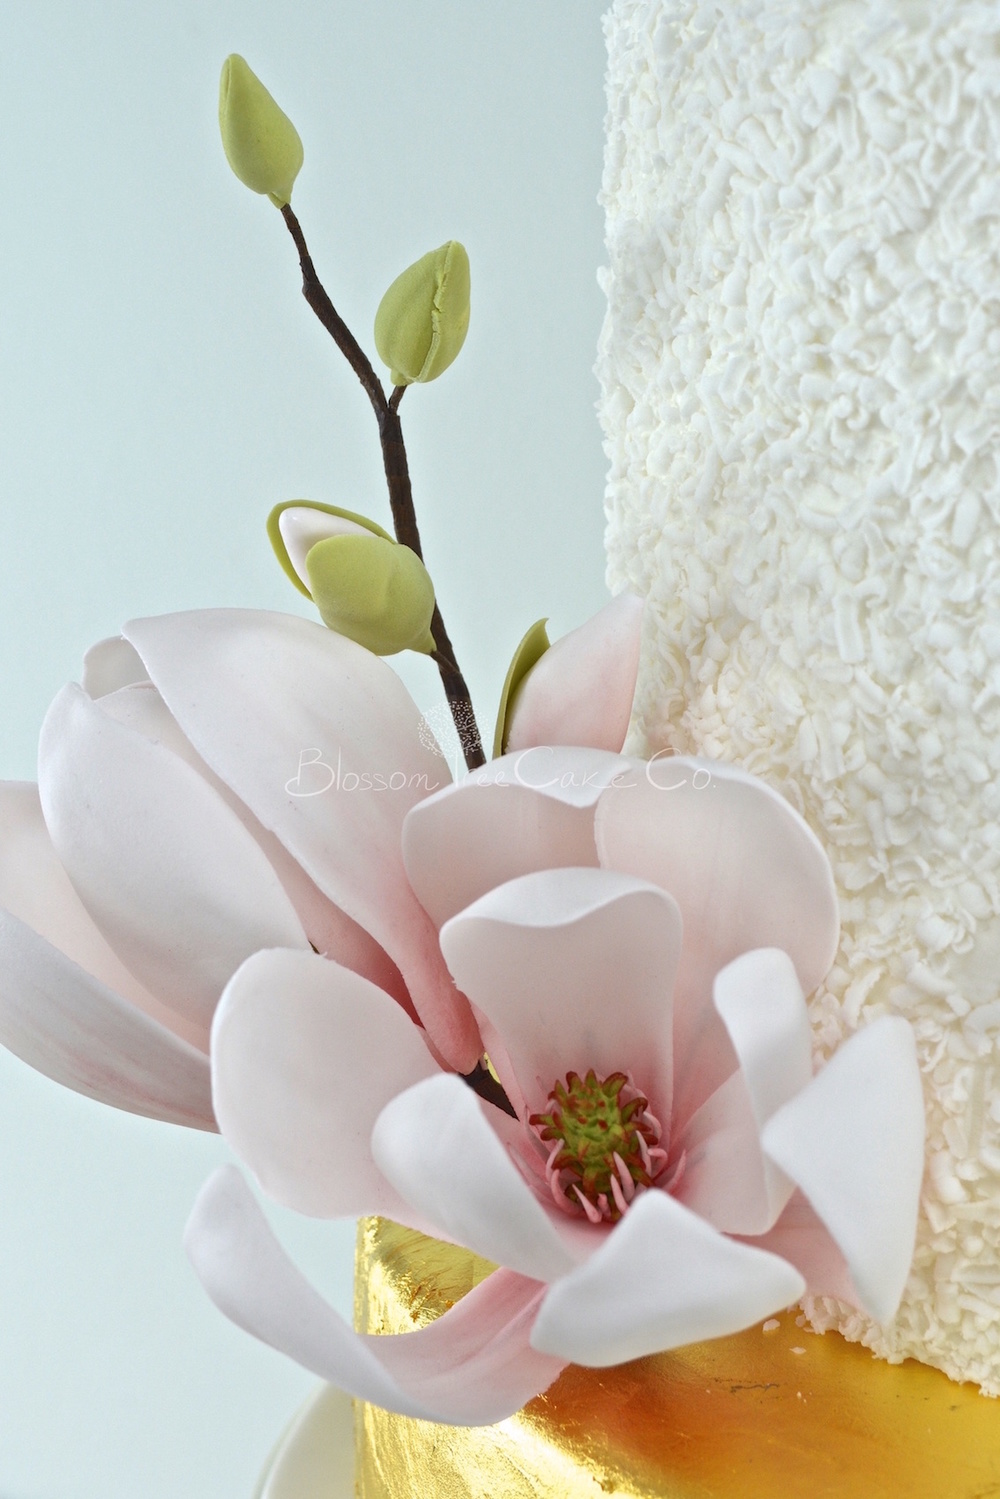 White and Gold Leaf with Magnolias wedding cake by Blossom Tree Cake Co Harrogate North Yorkshire_flower 2.jpg